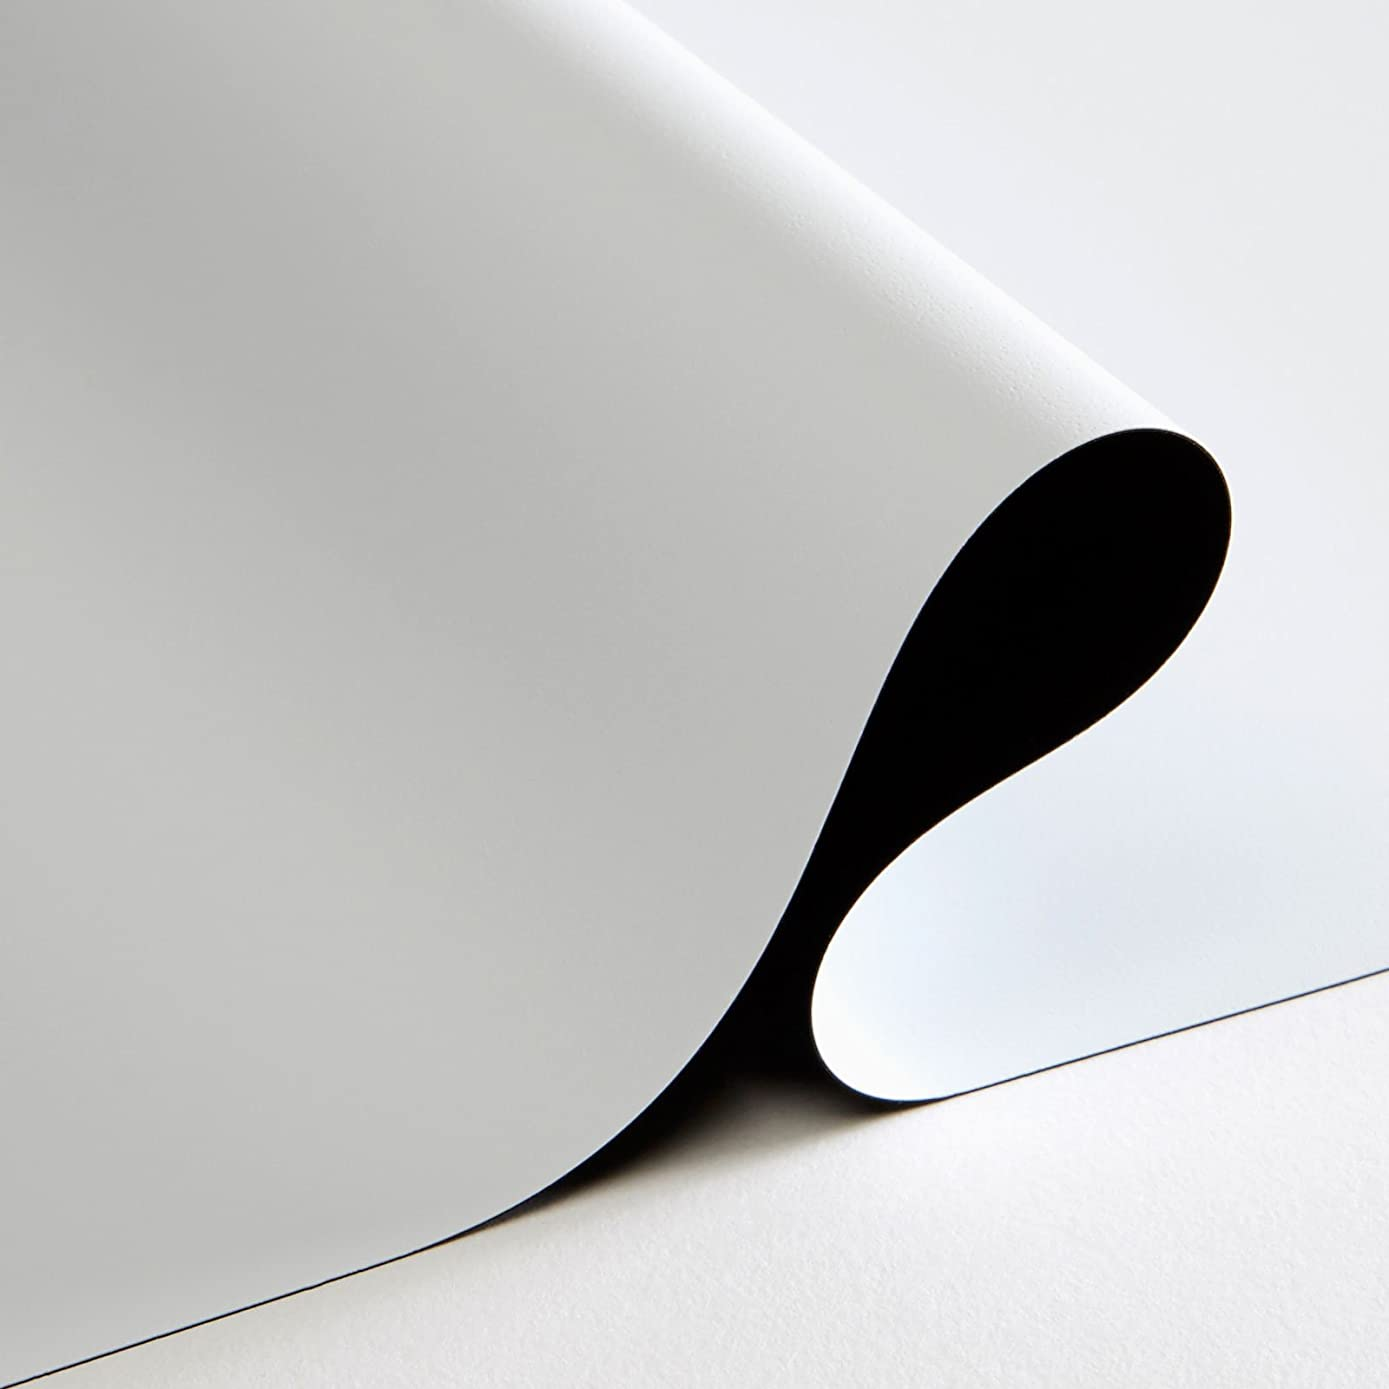 Carl's FlexiWhite Projector Screen Material (16:9 | 71x126 | 144-in | Rolled) 4K, HD, Active 3D, Matte White, DIY Projector Screen, Dark Rm, Controlled Ambient Light, Tensioned, Raw Pre Cut Cloth